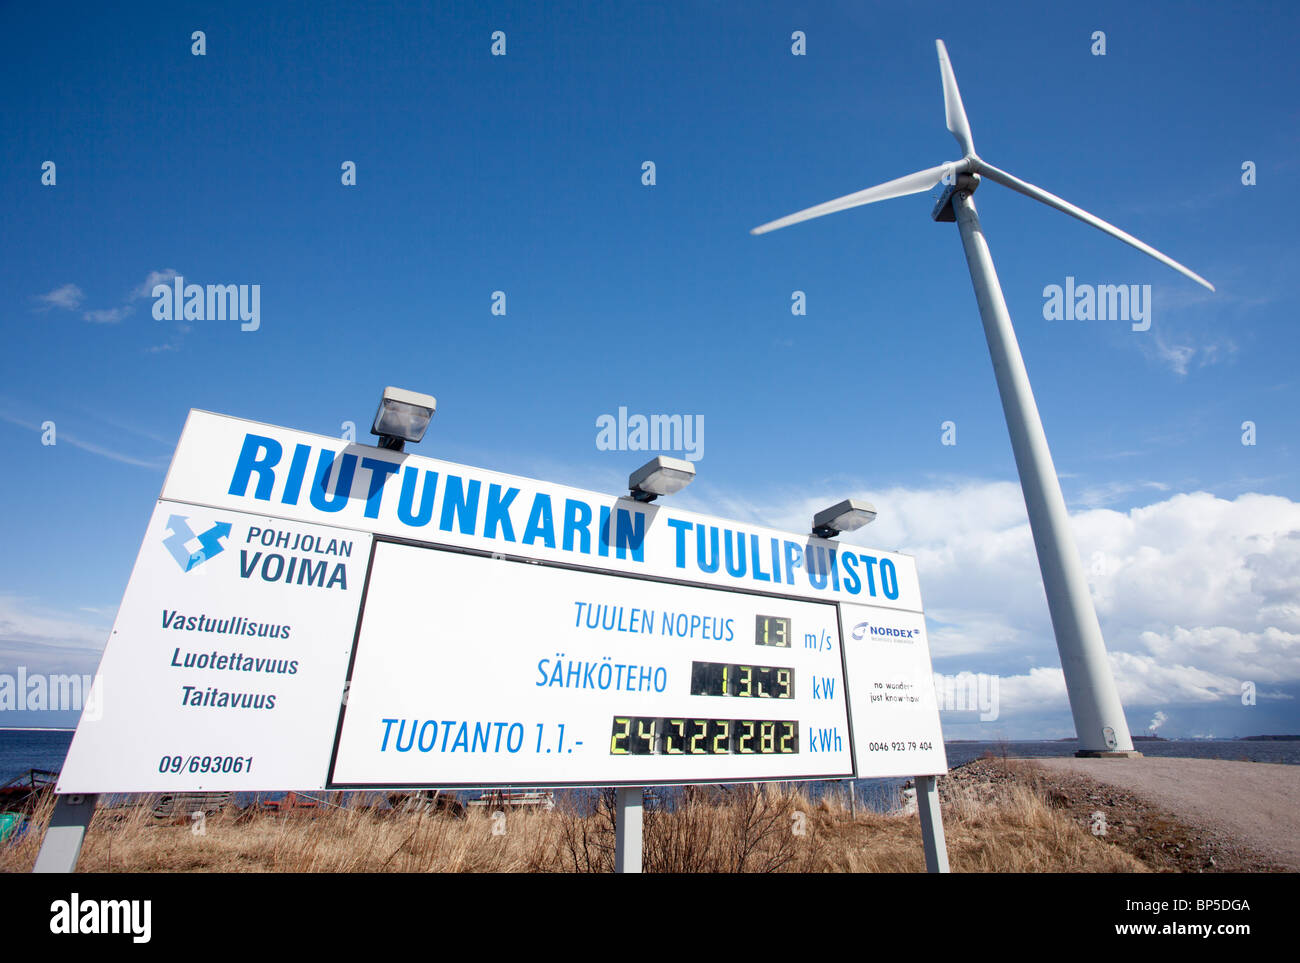 Riutunkari wind farm information board telling the real-time electricity production figures and wind turbine , Finland - Stock Image